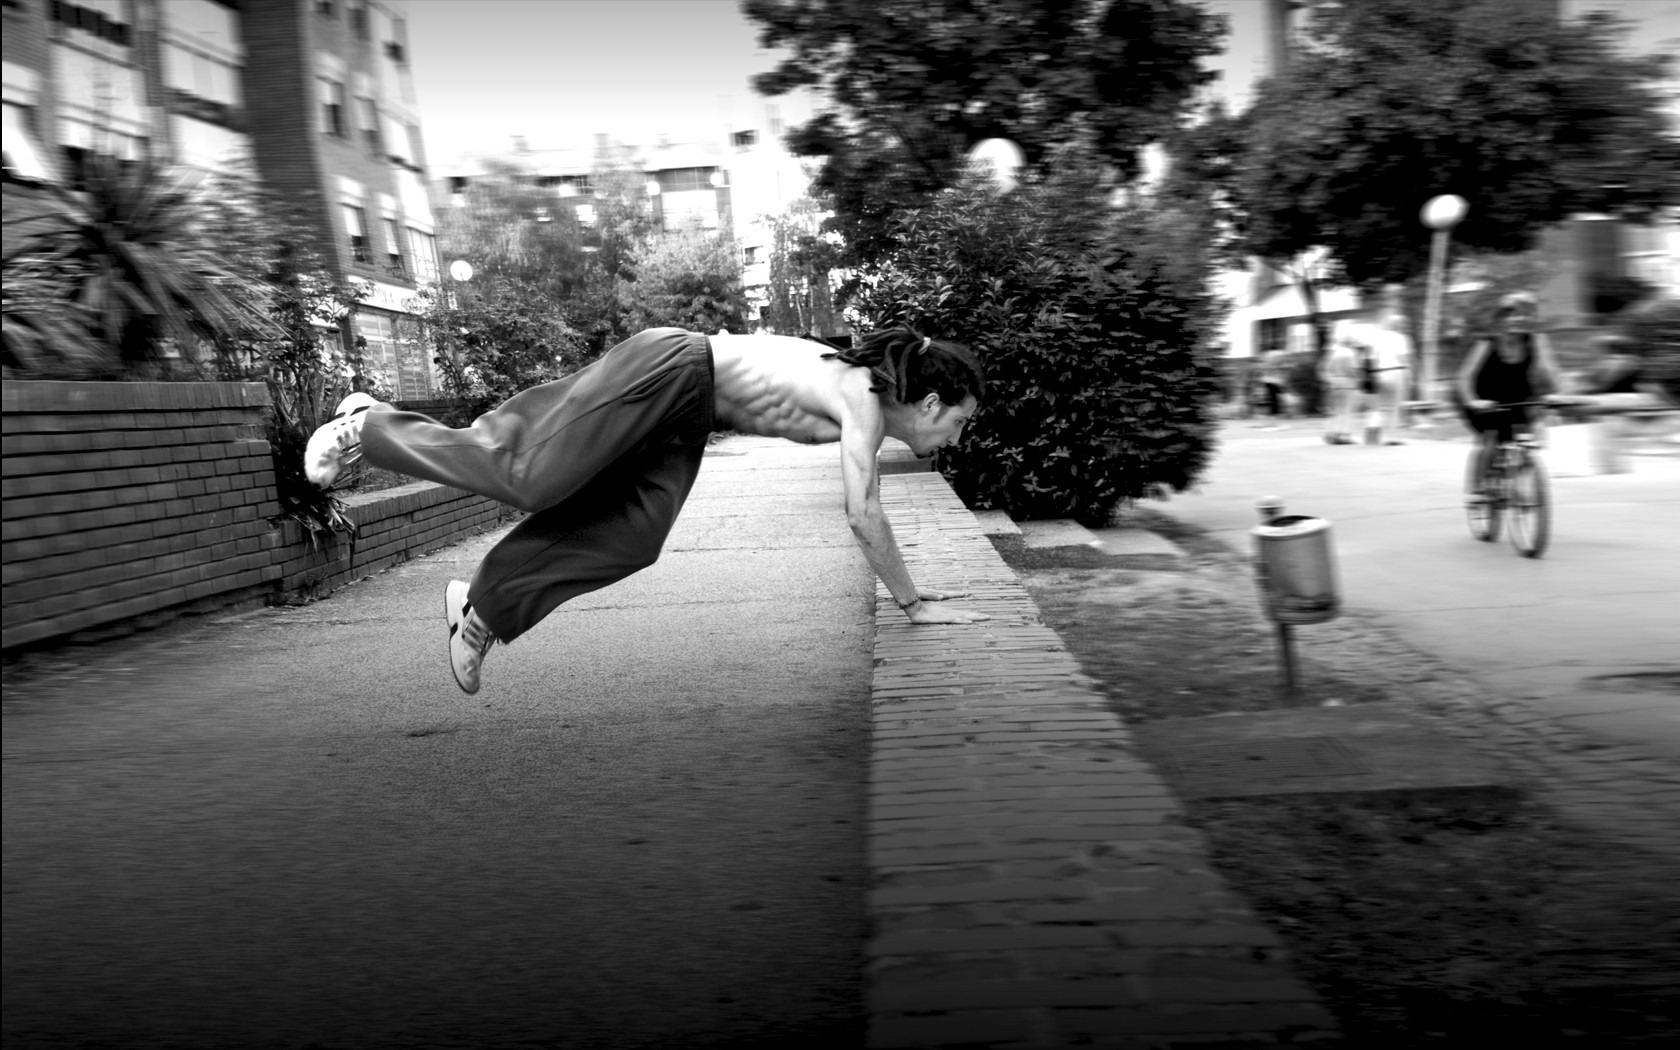 parkour monochrome flow Men HD Wallpaper